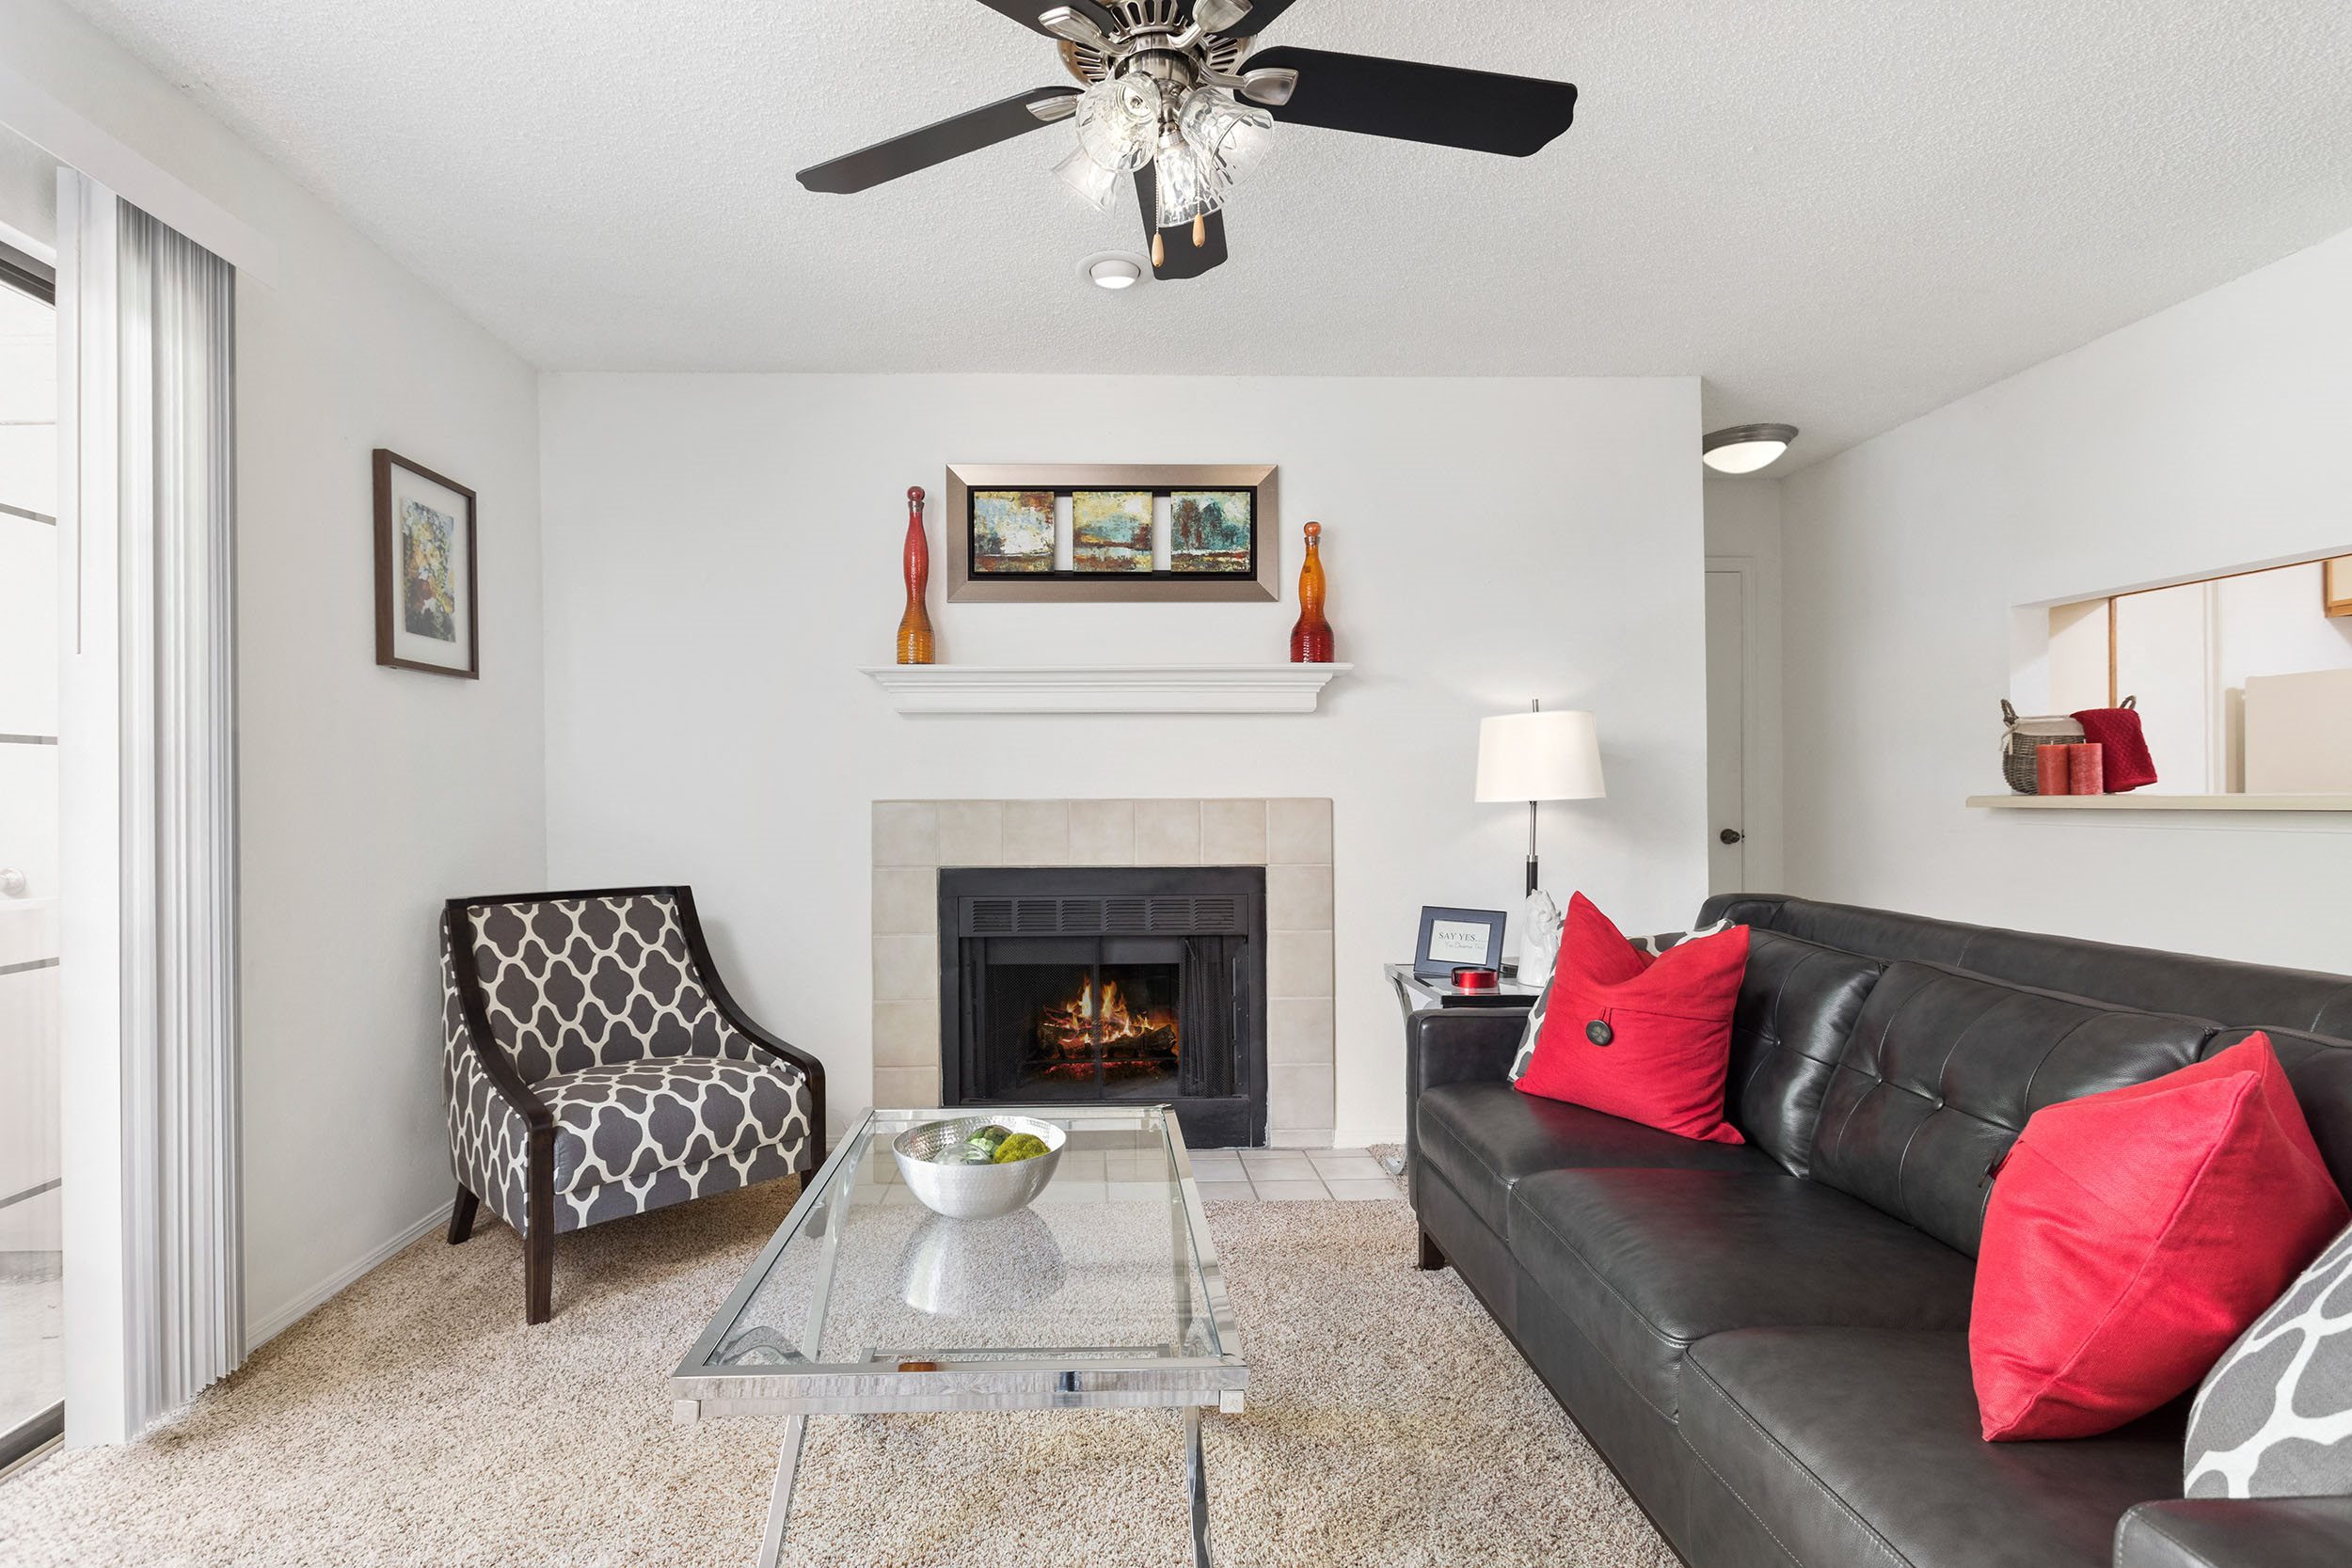 Living Room View with Fireplace and Ceiling Fan - The Augusta Apartments